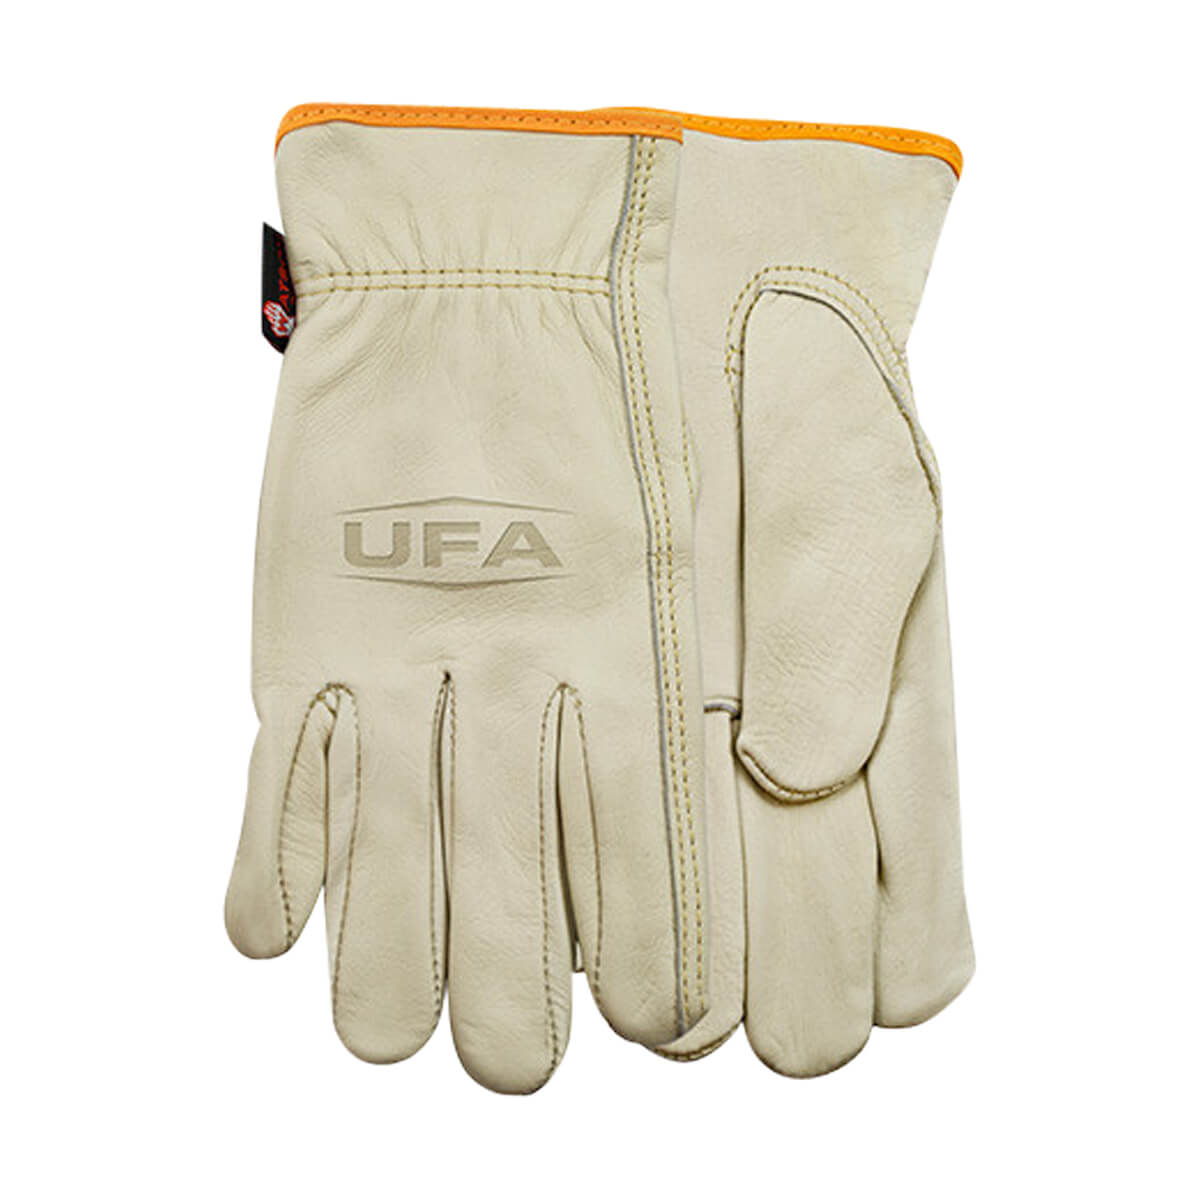 UFA Women's Premium Full Grain Leather Gloves